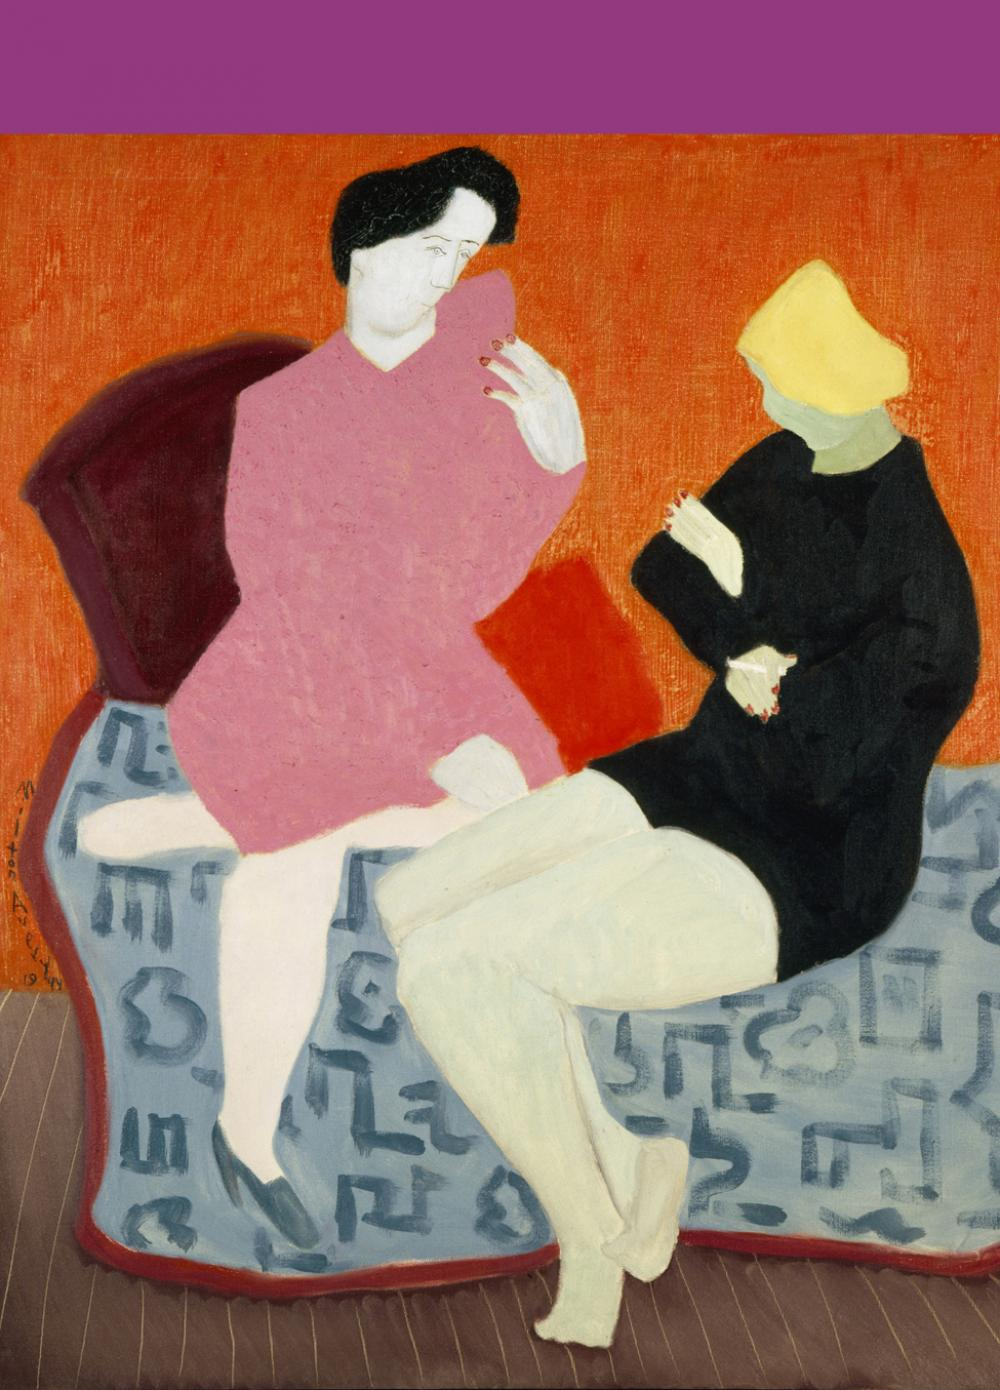 Milton Avery (American, 1893-1965), Discussion, 1944